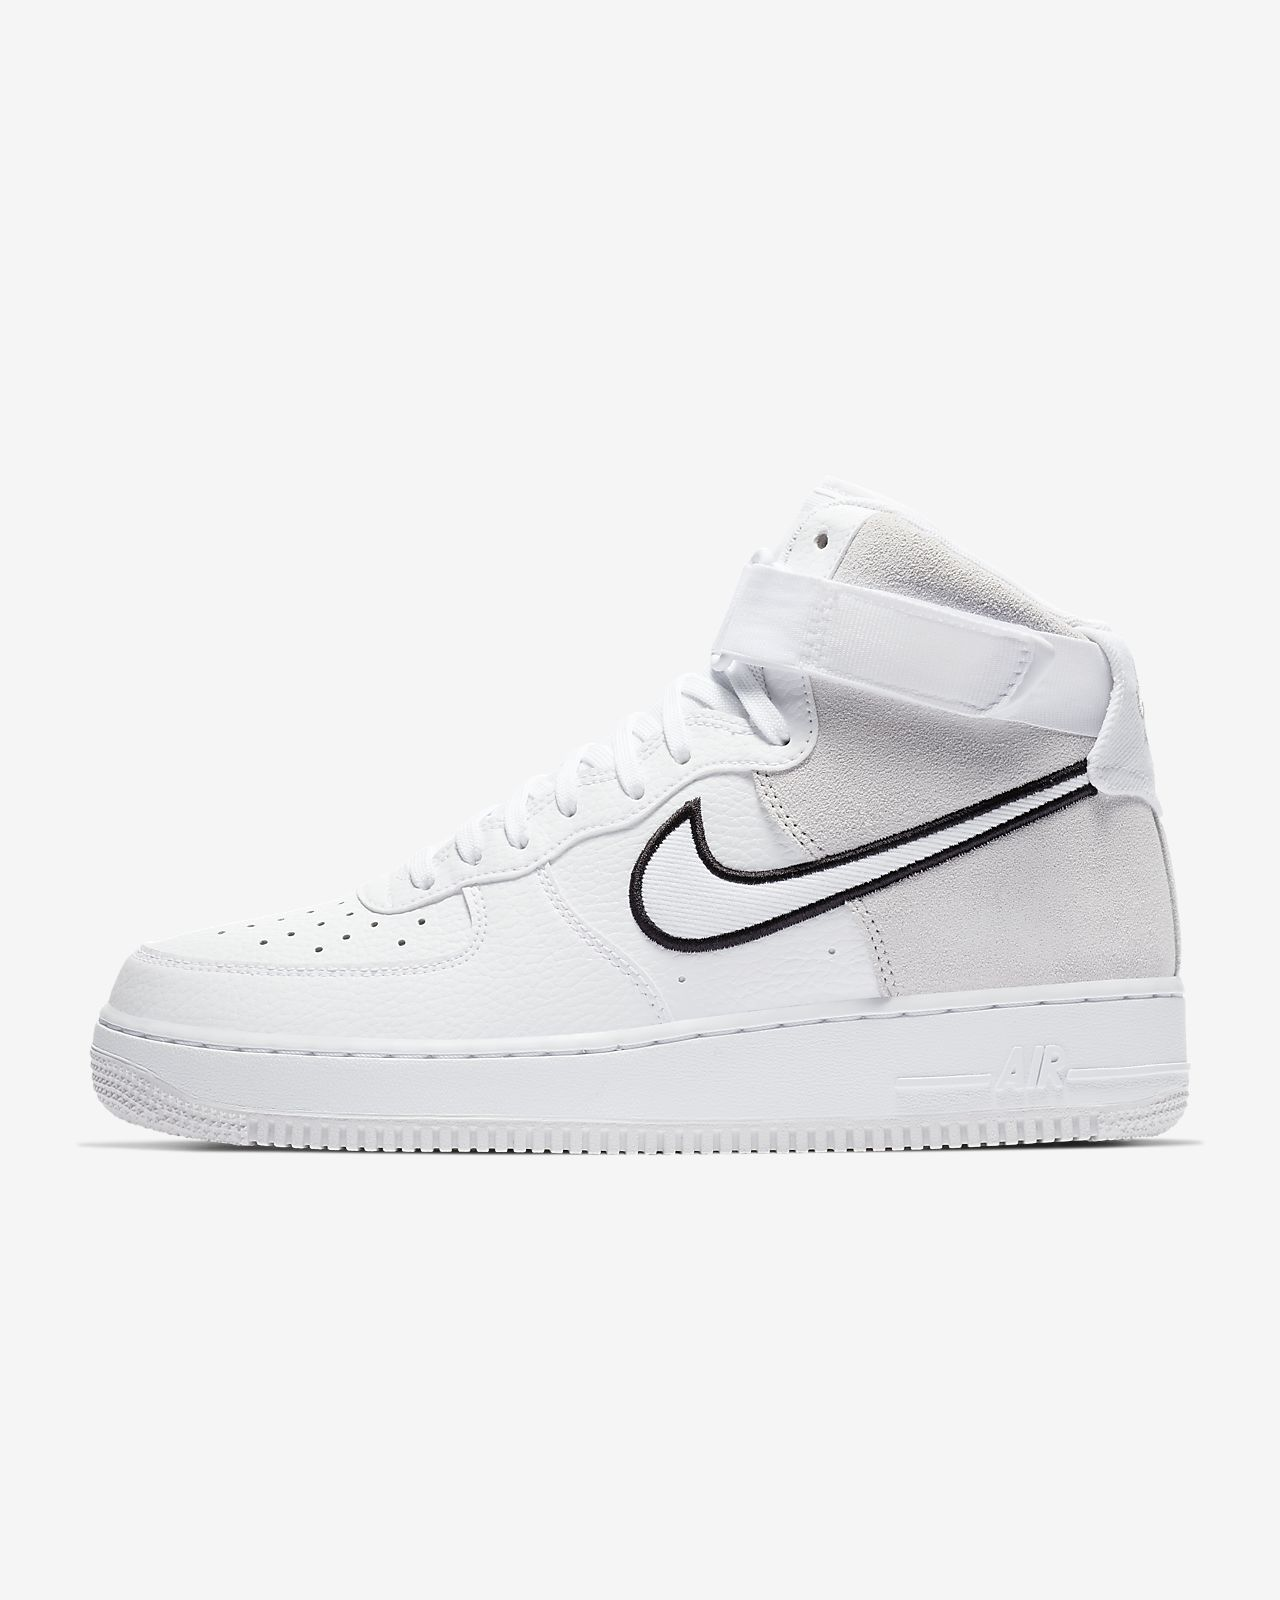 the latest 1a7dd 8ebbe Nike Air Force 1 High 07 LV8 1